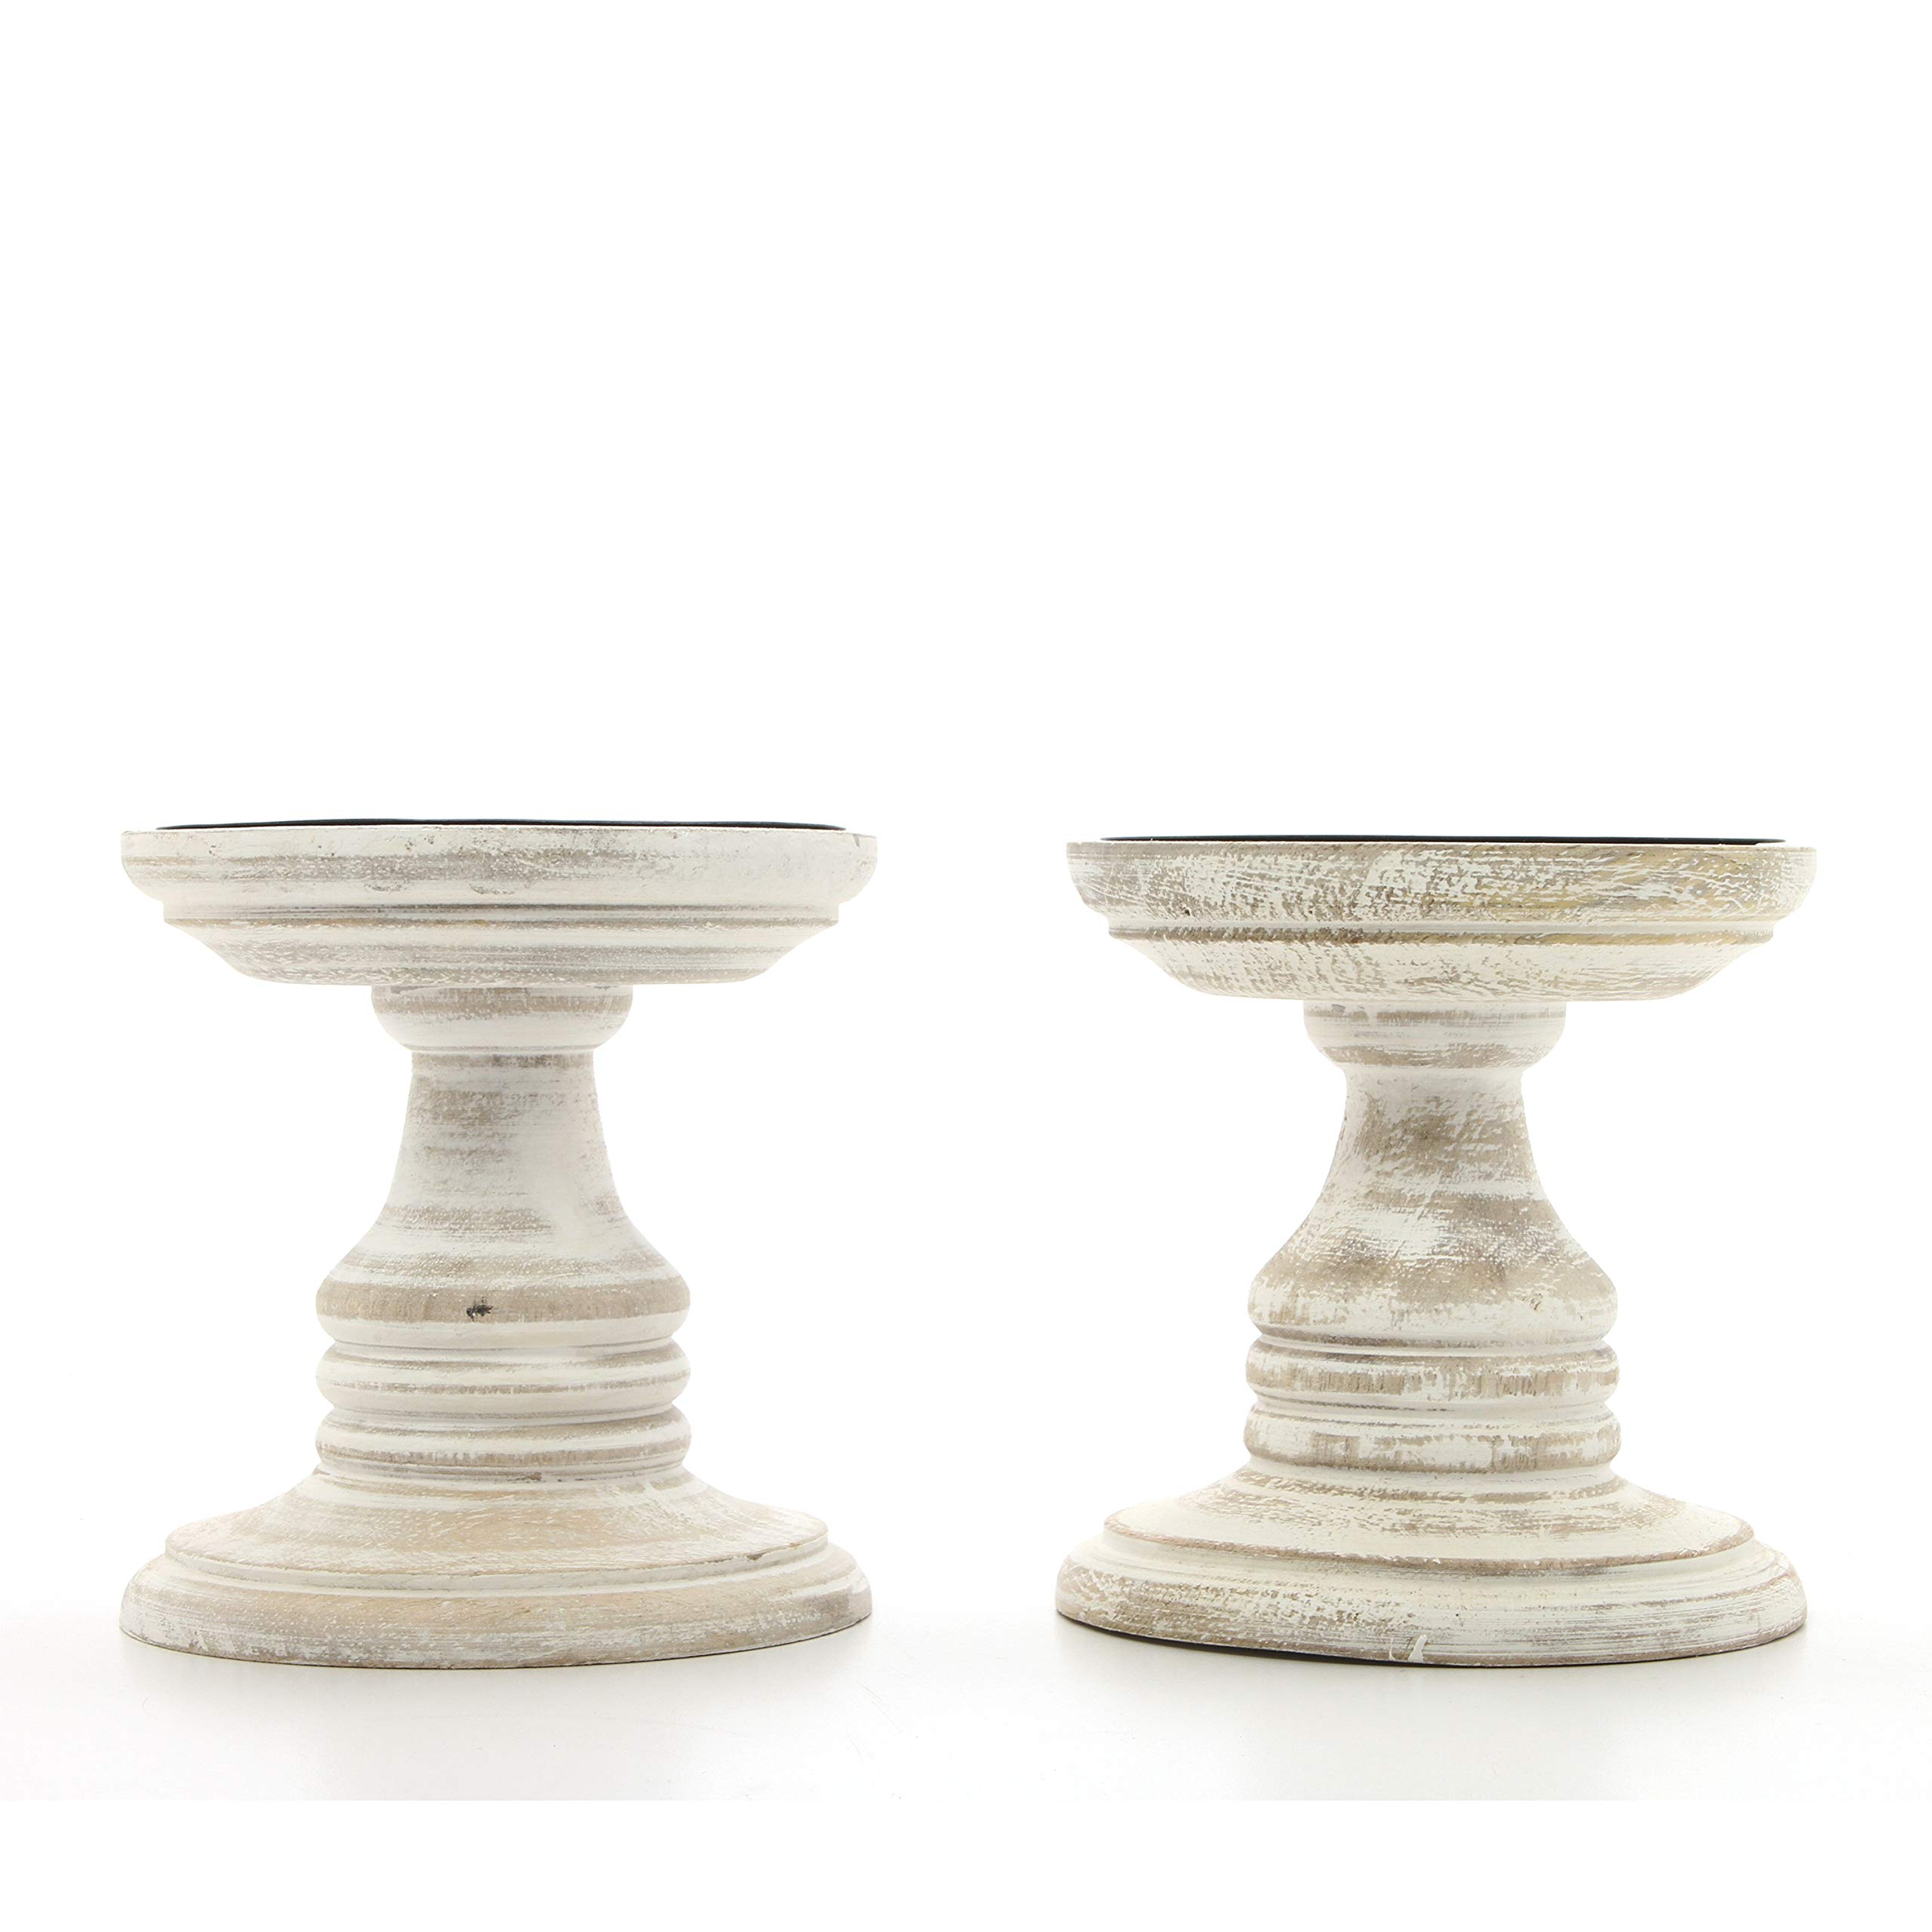 Hosley Set of 2 White Wood Pillar Holders - 5'' High. Ideal Gift for Weddings, Special Occasion, Spa, Aromatherapy Settings, Candle Gardens W1